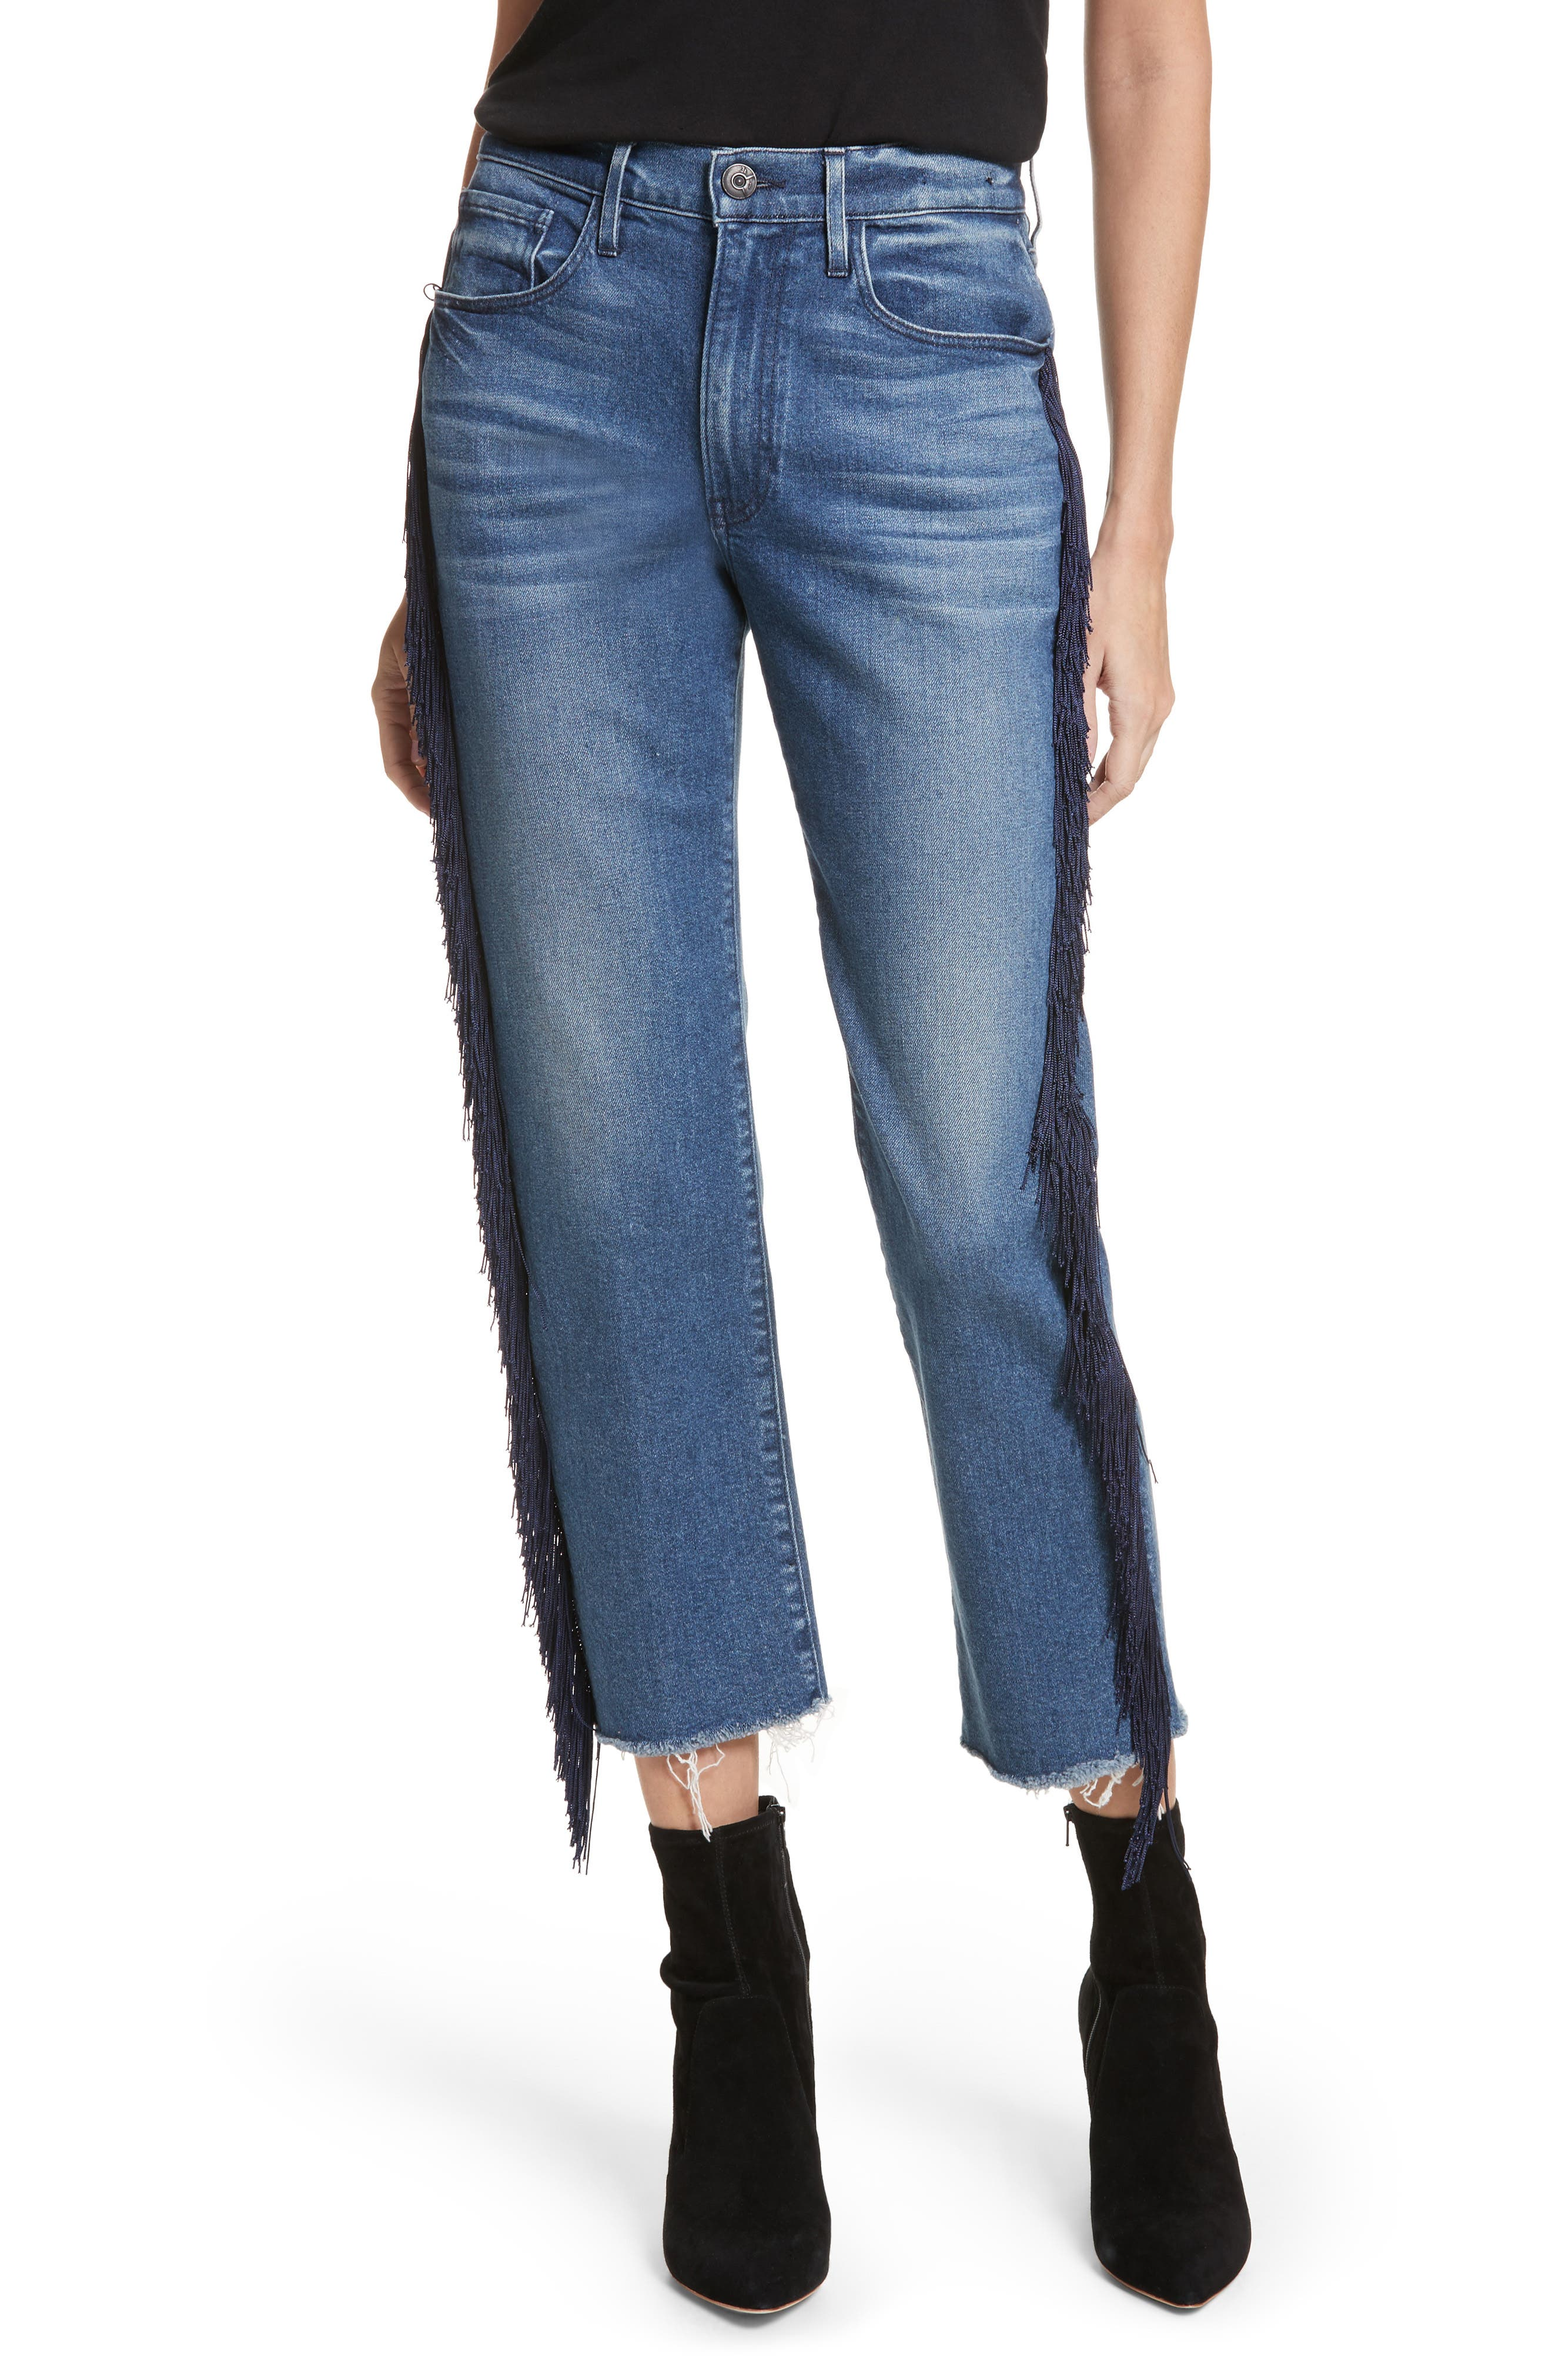 W3 Higher Ground Fringe Crop Straight Leg Jeans,                             Main thumbnail 1, color,                             426